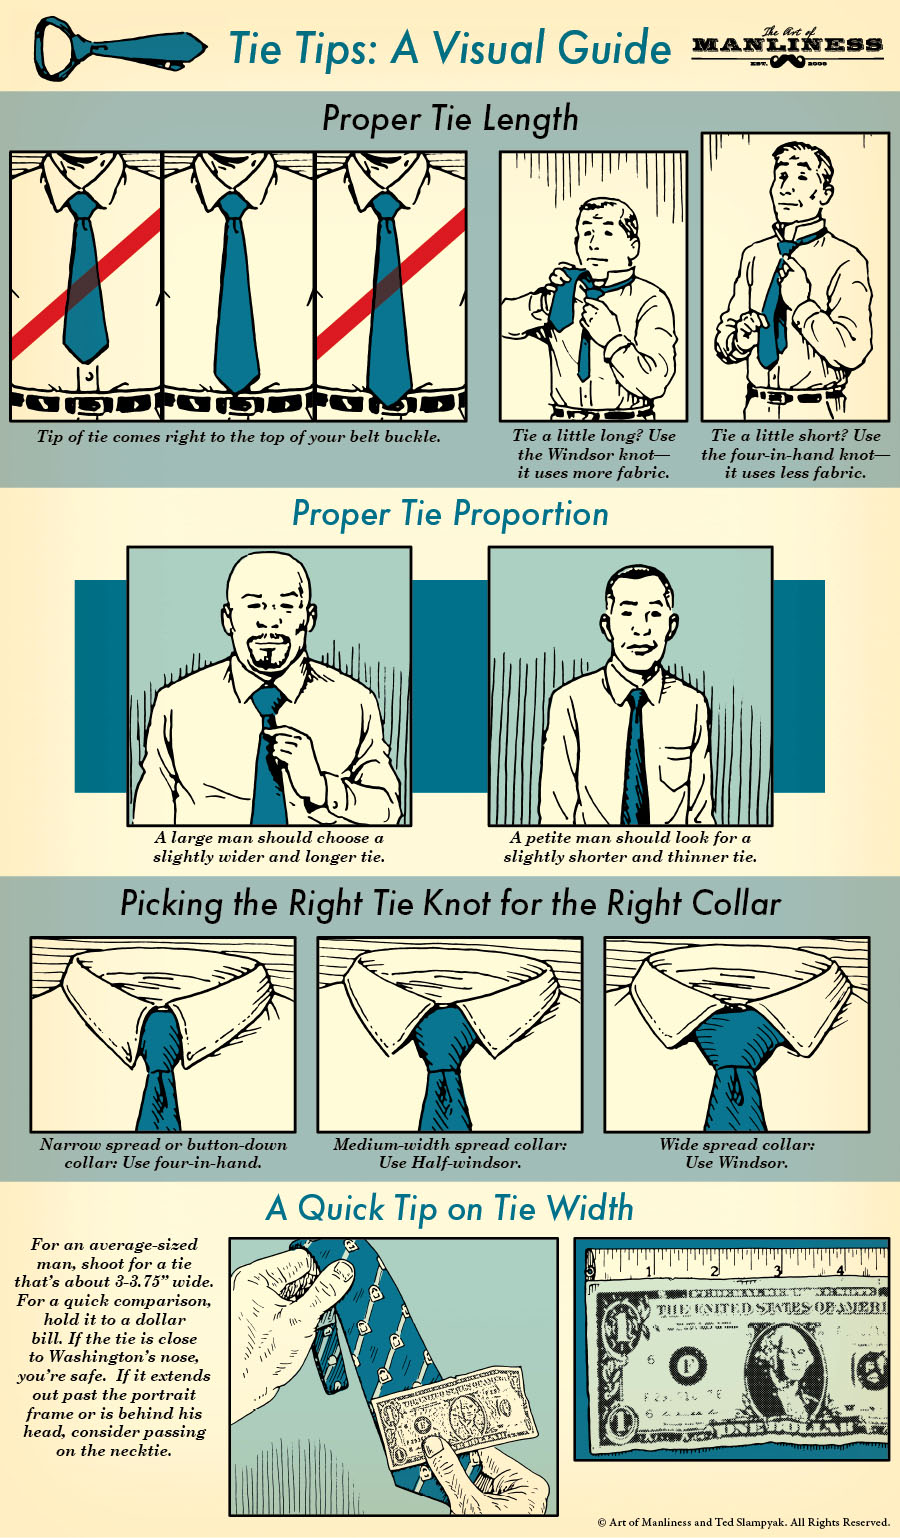 "Tie Tips: A Visual Guide Proper Tie Length. Tip of tie comes right to the top of your belt buckle. Tie a little long? Use the Windsor Knot – it uses more fabric. Tie a little short? Use the four-in-hand knot – it uses less fabric. Proper Tie Proportion. A large man should choose a slightly wider and longer tie. A petite man should look for a slightly shorter and thinner tie. Picking the Right Tie Know for the Right Collar. Narrow spread or button collar – use four-in-hand. Medium-width spread collar – use Hald-windsor. Wide spread collar – use Windsor. A Quick Tip on Tie Width. For an average-sized man, shoot for a tie that's about 3-3.75"" wide. For a quick comparison, hold it to a dollar bill. If the tie is close to Washington's nose, you're safe. If it extends past the portrait frame or is behind his head, consider passing on the necktie."